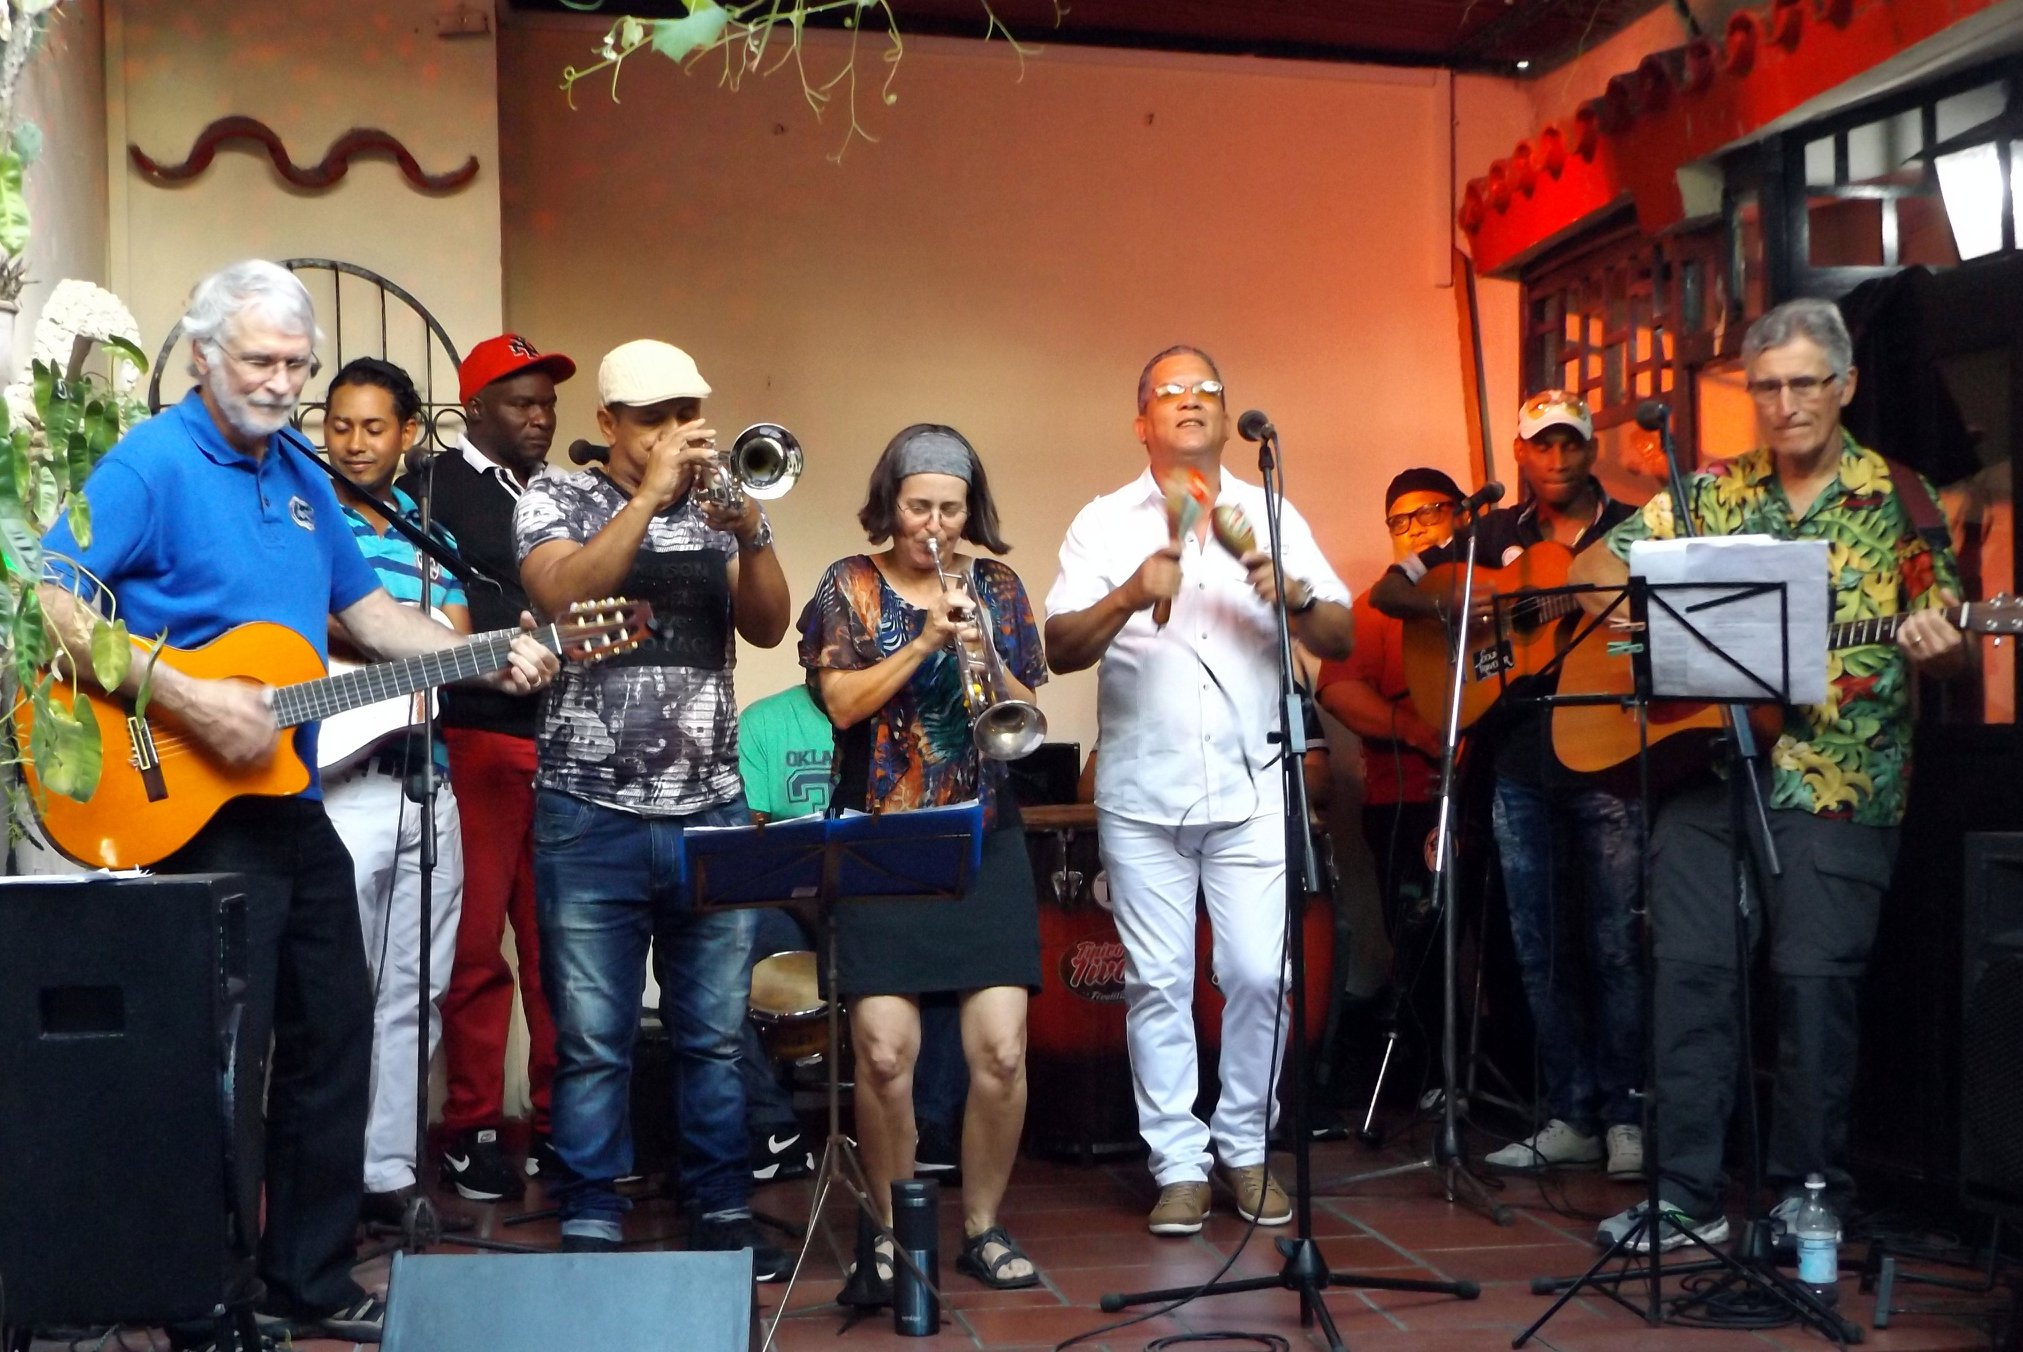 One of the best ways to enjoy Cuban music in Santiago de Cuba is to perform on stage alongside Cuban musicians.